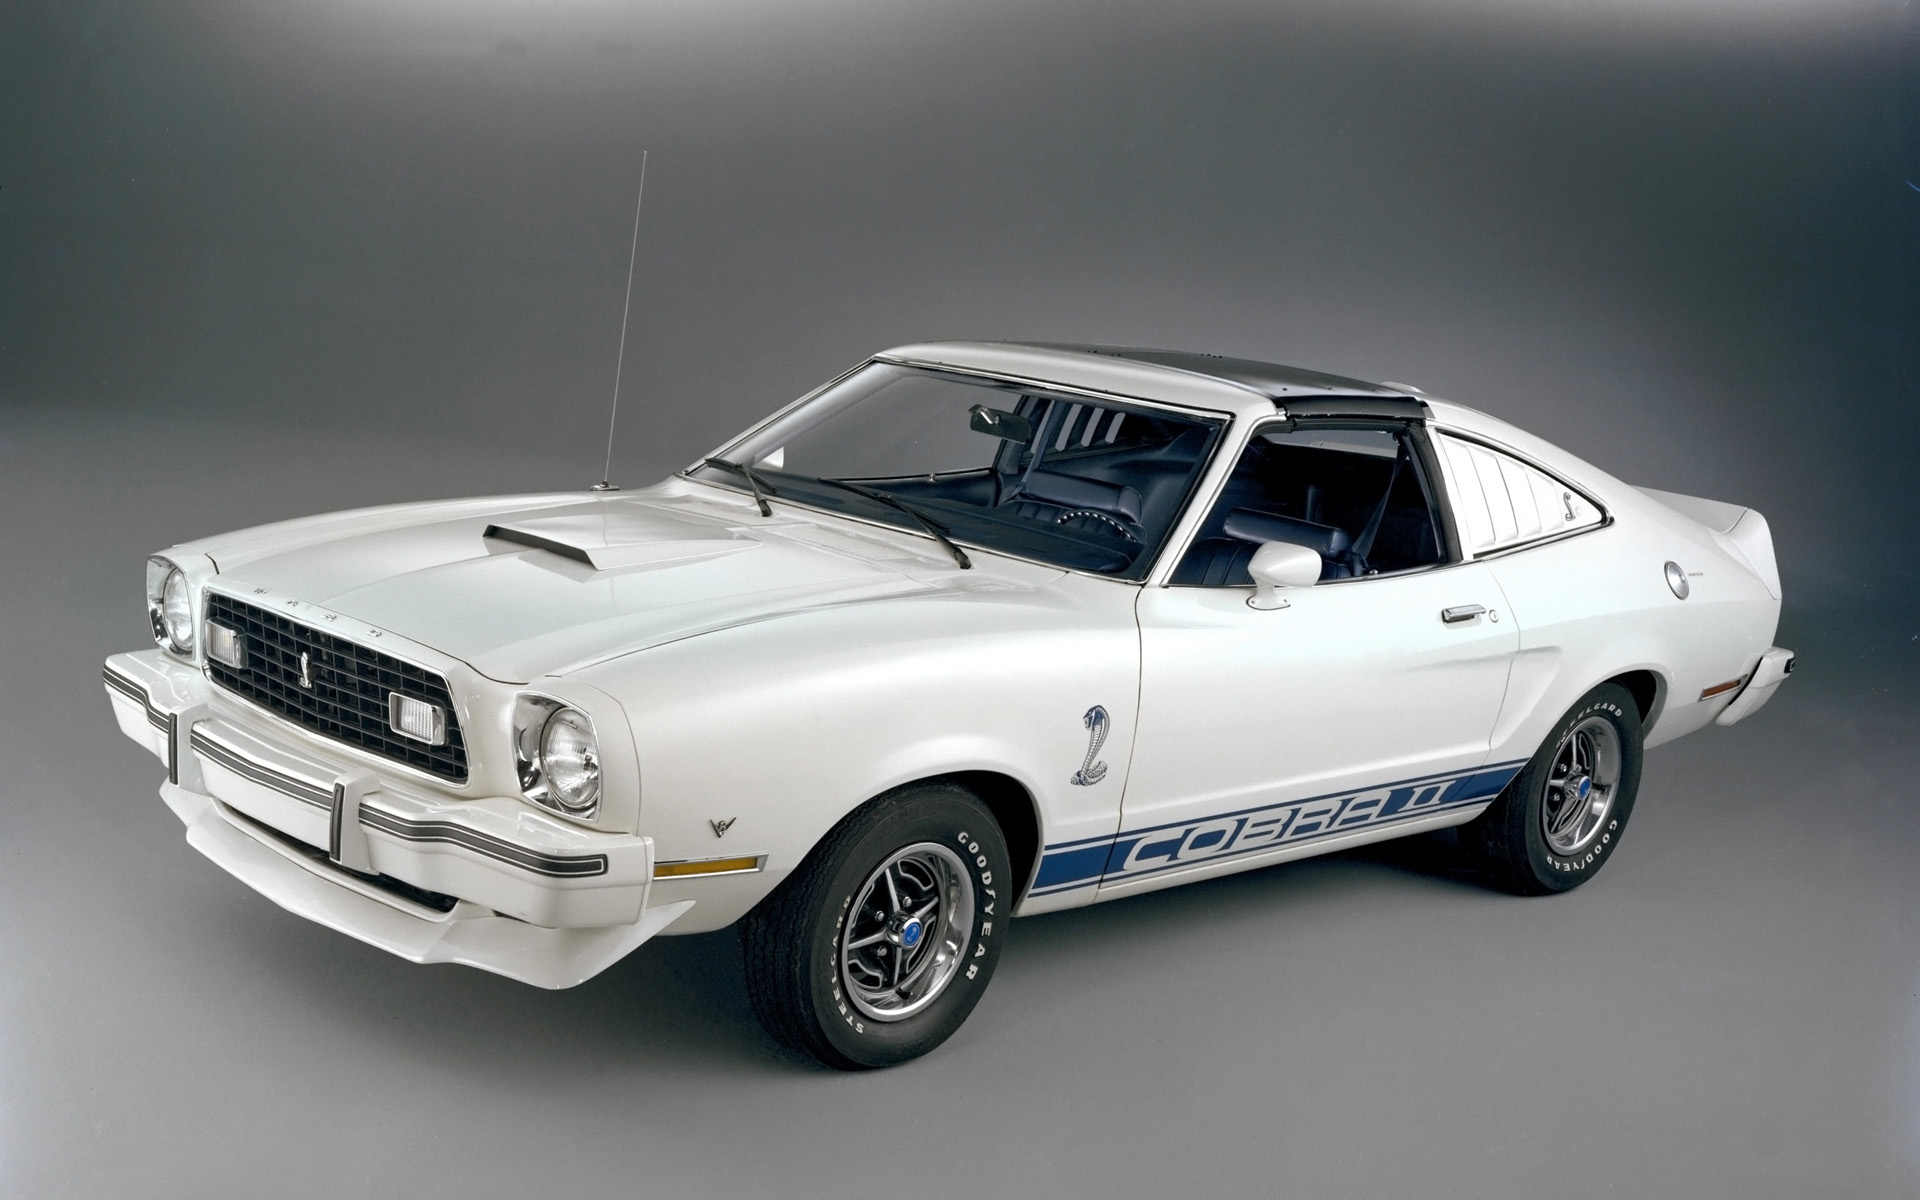 Cl Mustang >> 3DTuning of Mustang Cobra Coupe 1974 3DTuning.com - unique ...